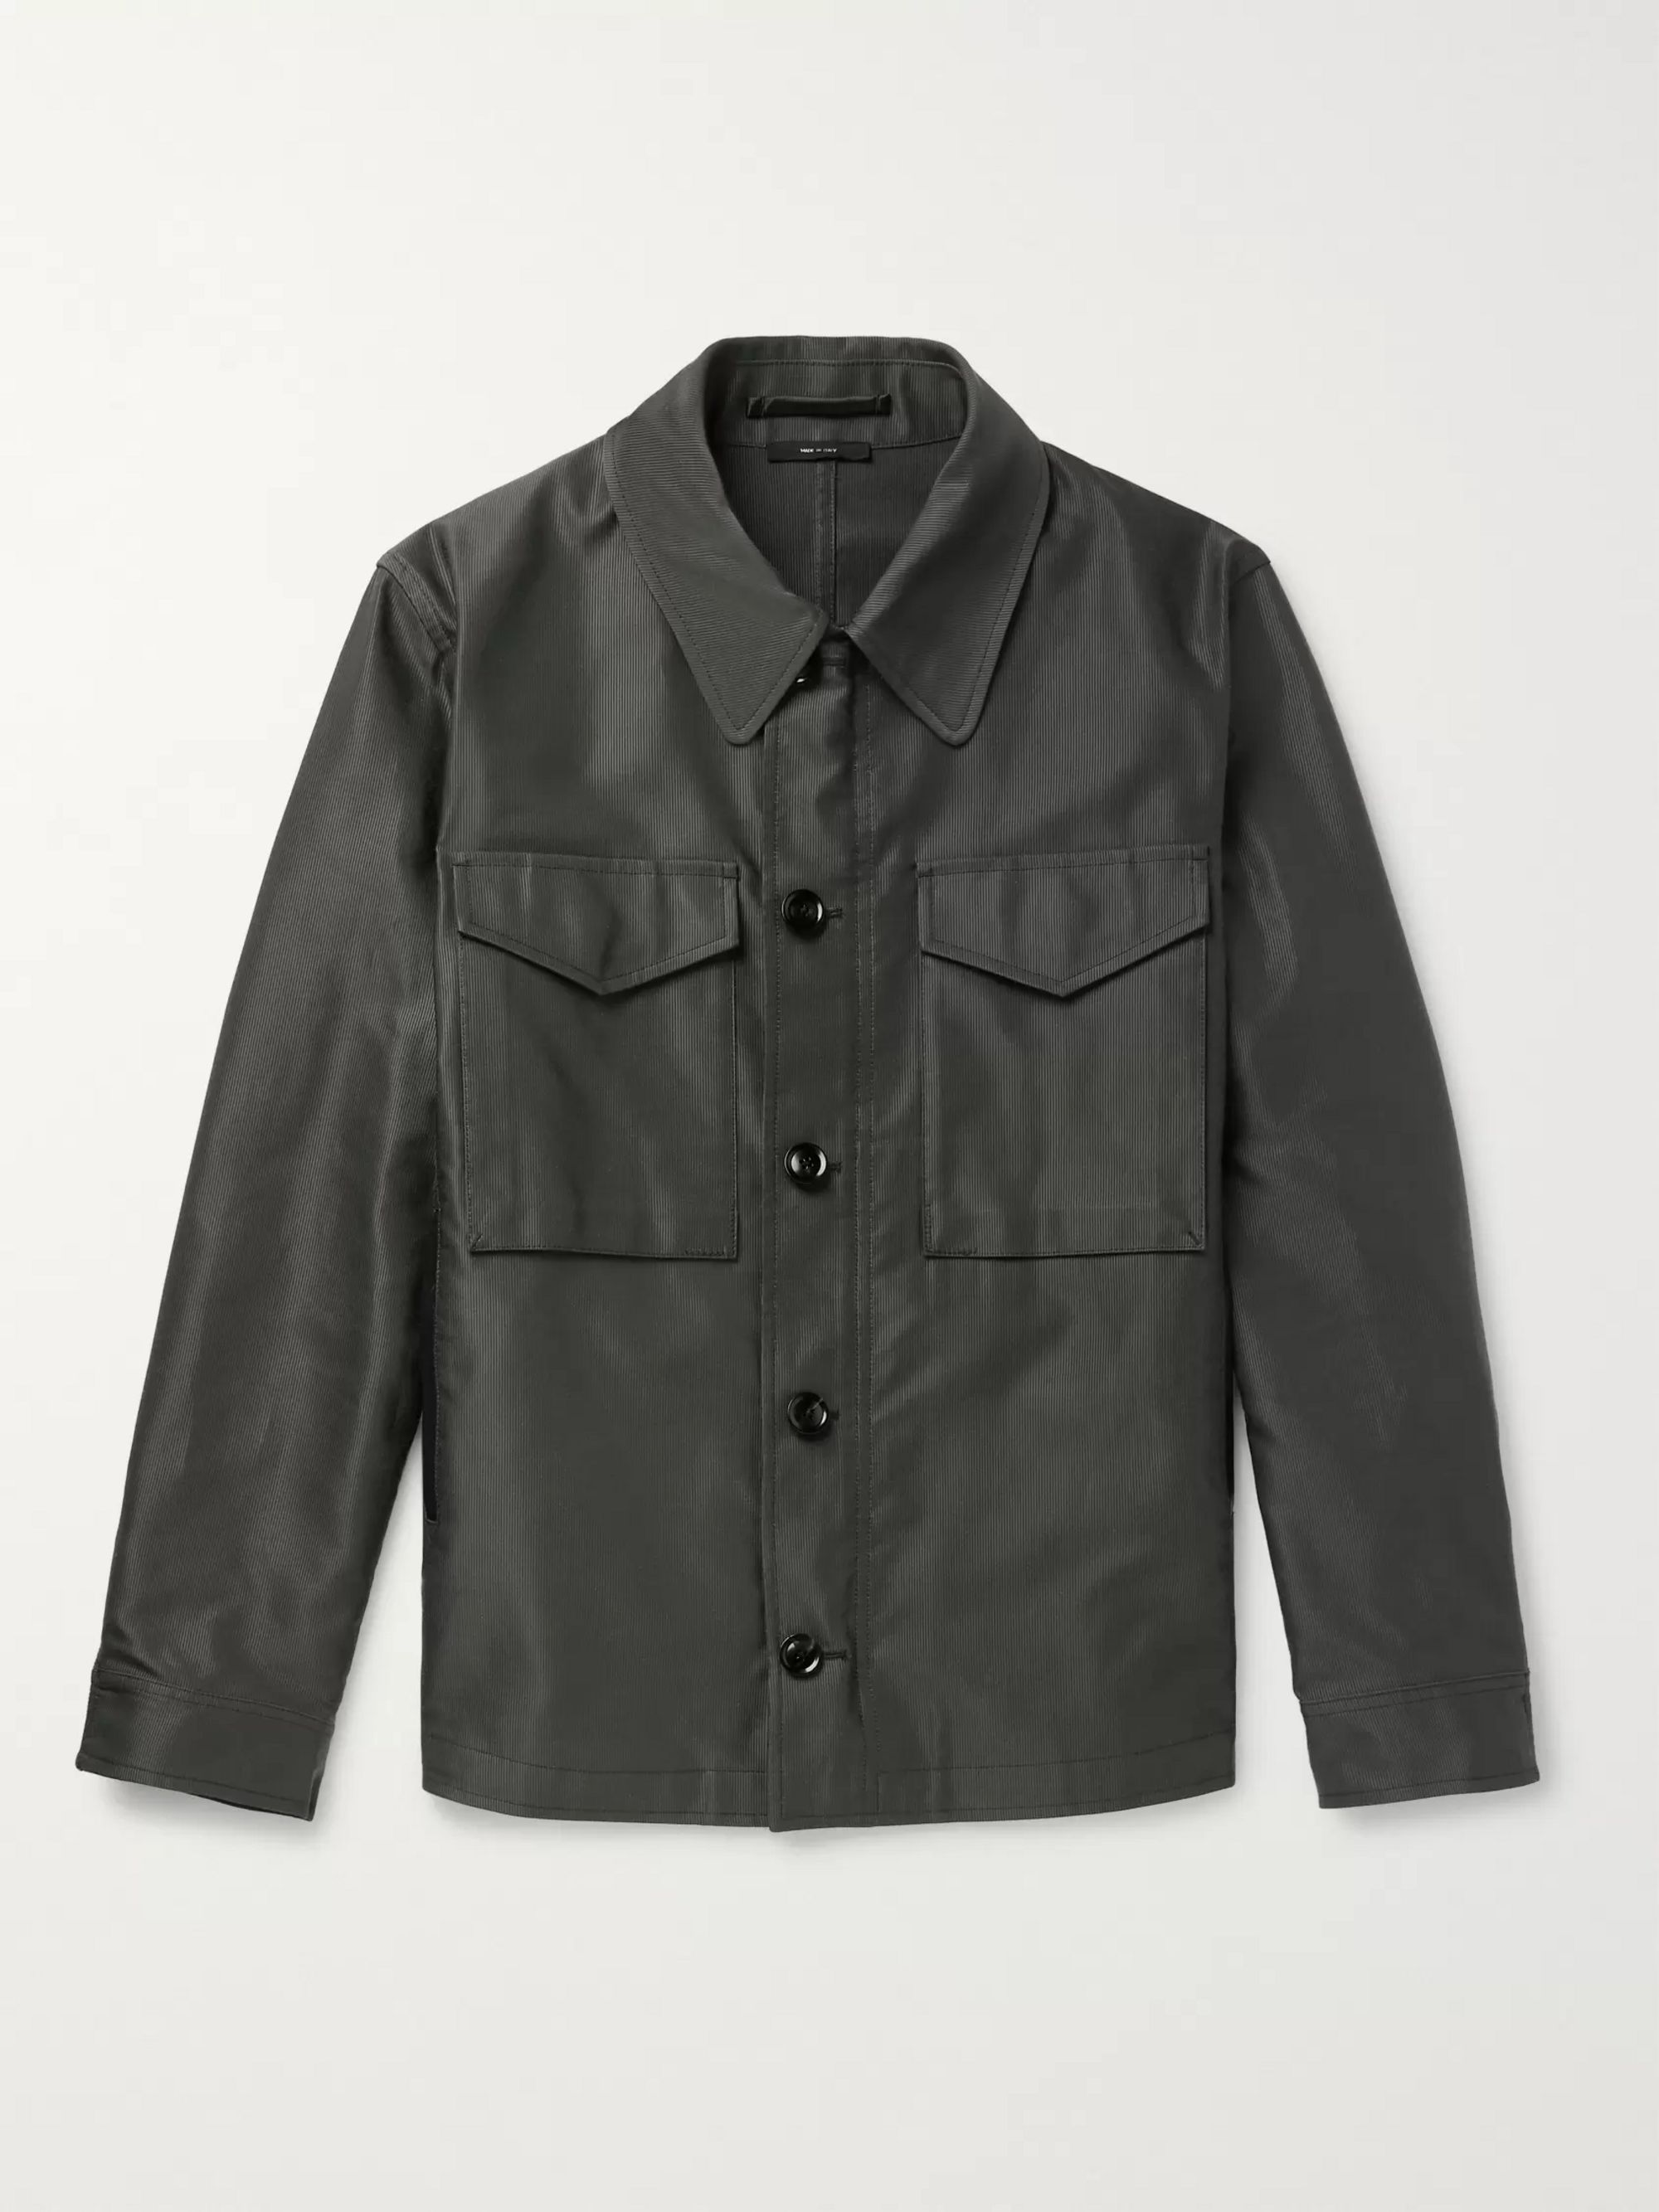 TOM FORD Leather-Trimmed Coated Cotton-Blend Field Jacket